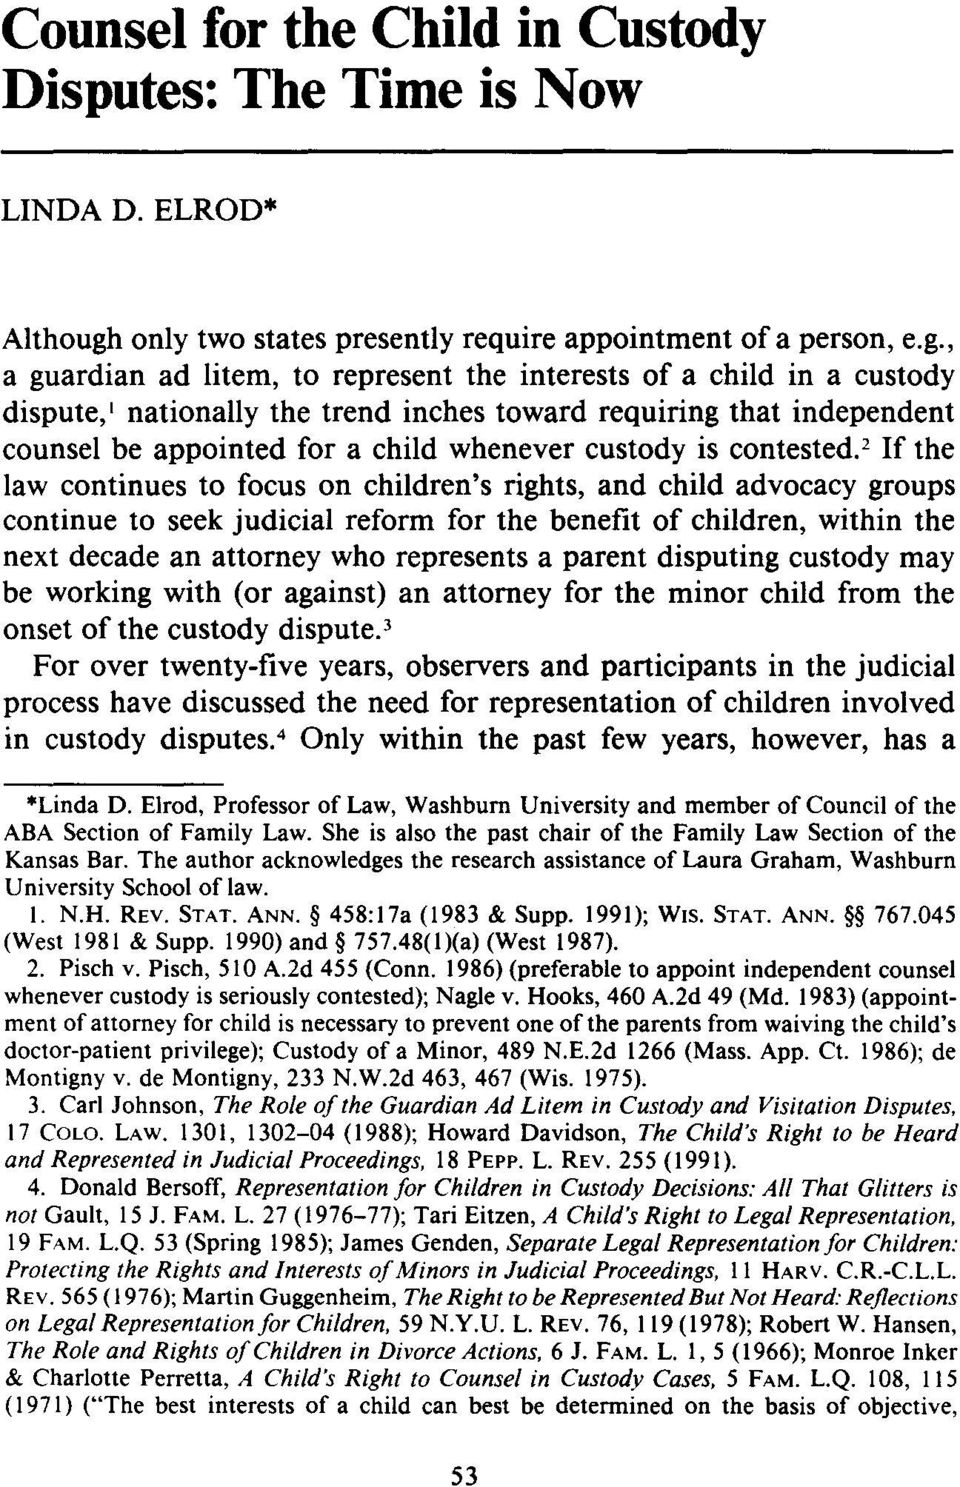 , a guardian ad litem, to represent the interests of a child in a custody dispute, I nationally the trend inches toward requiring that independent counsel be appointed for a child whenever custody is